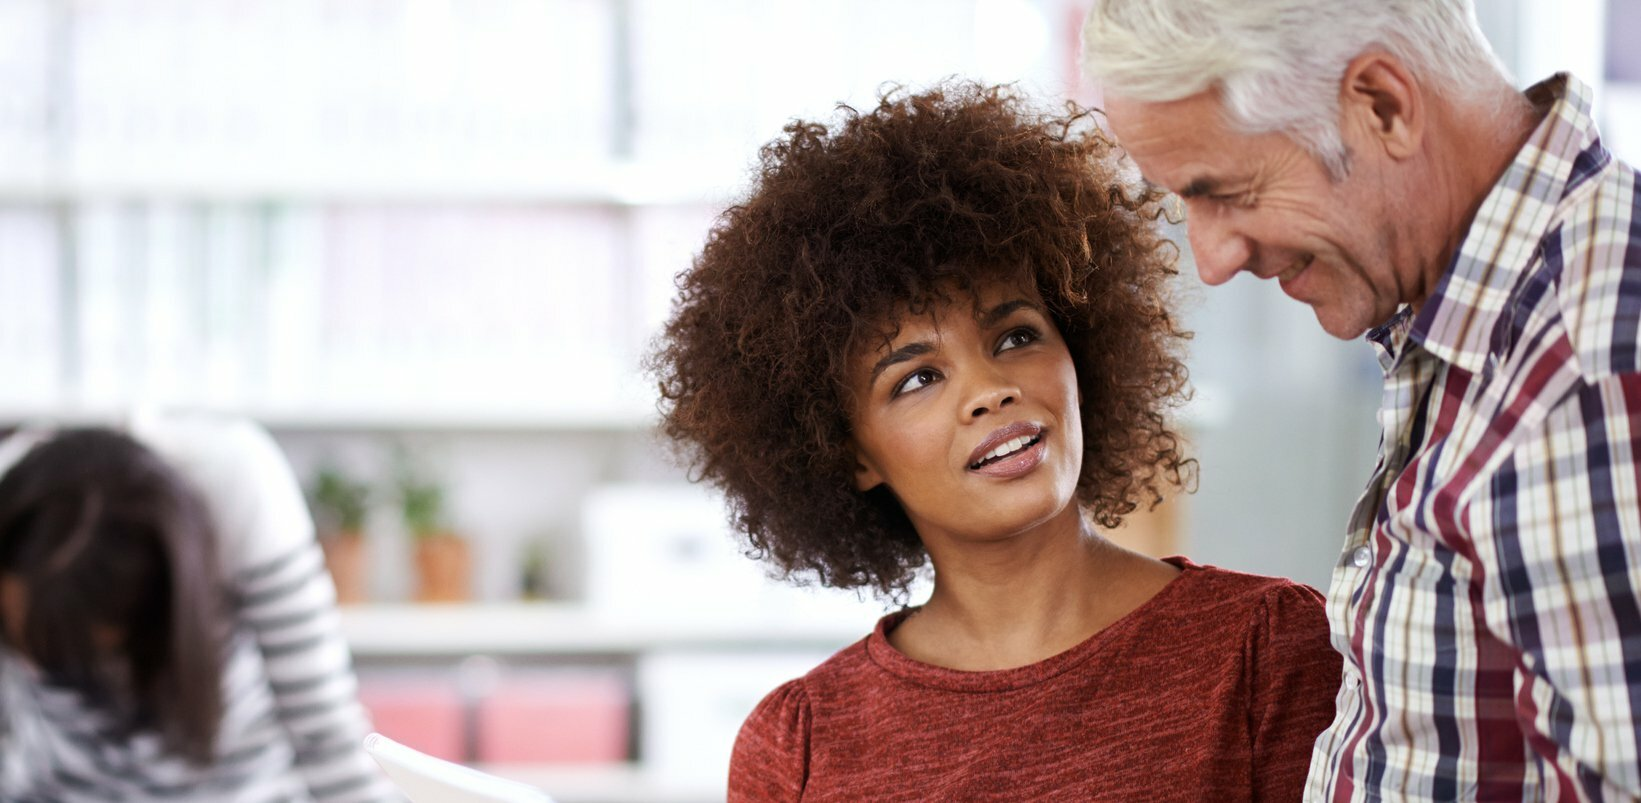 Ask This Question When You Want to Skip the Small Talk and Cut to the Chase